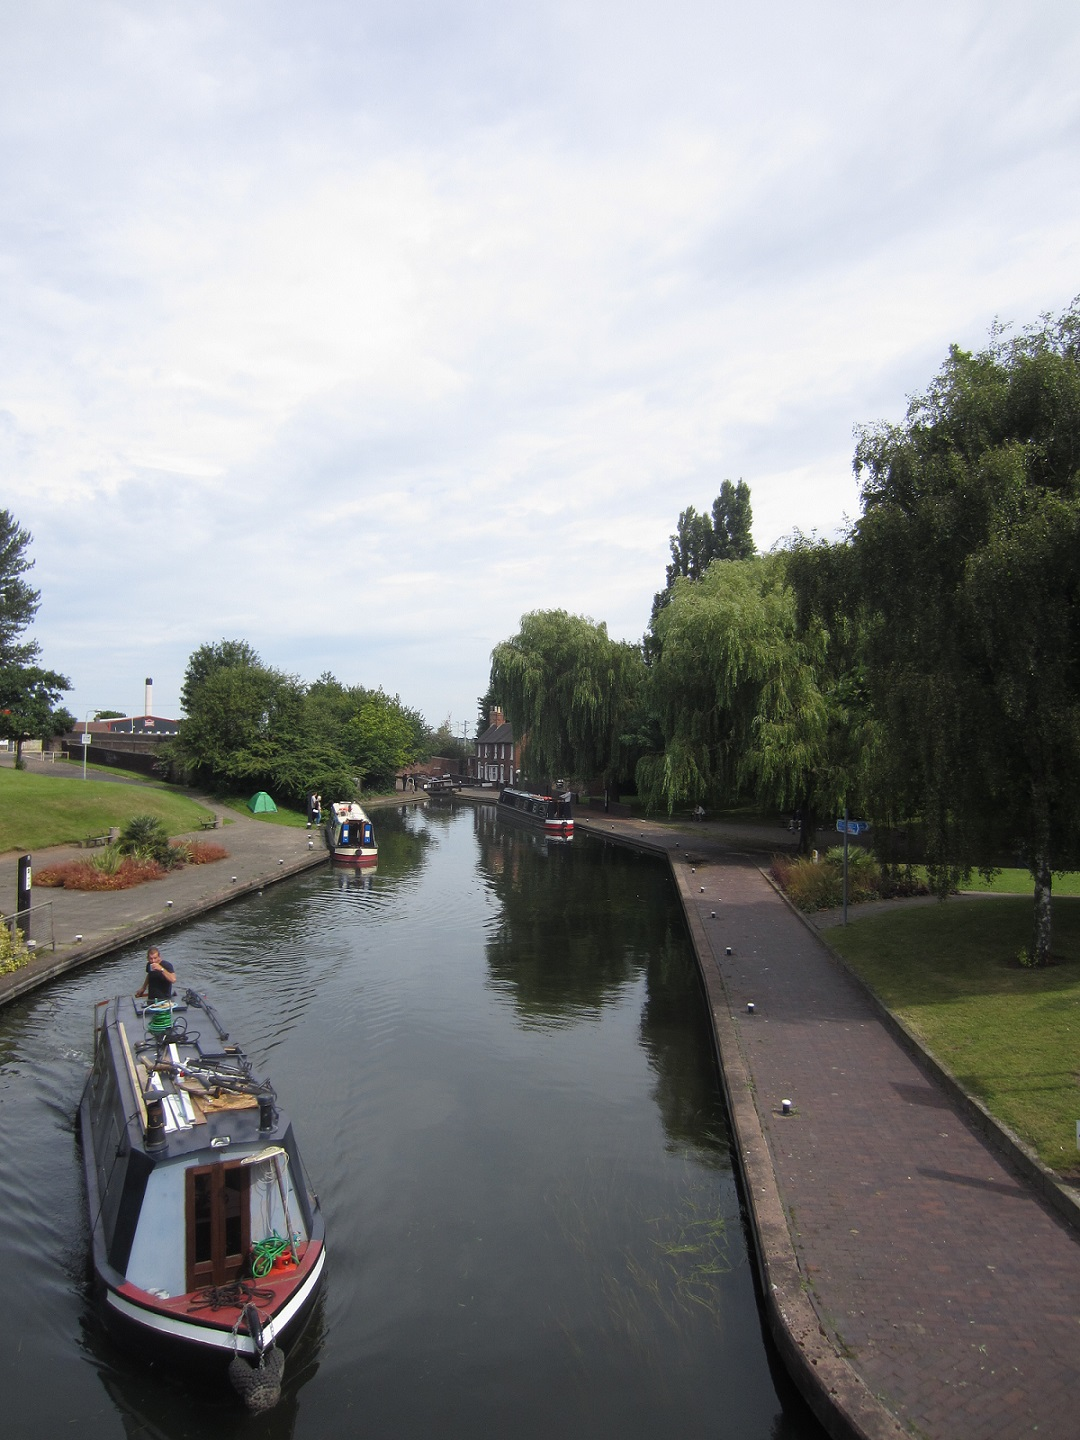 Wolverhampton canal and boat